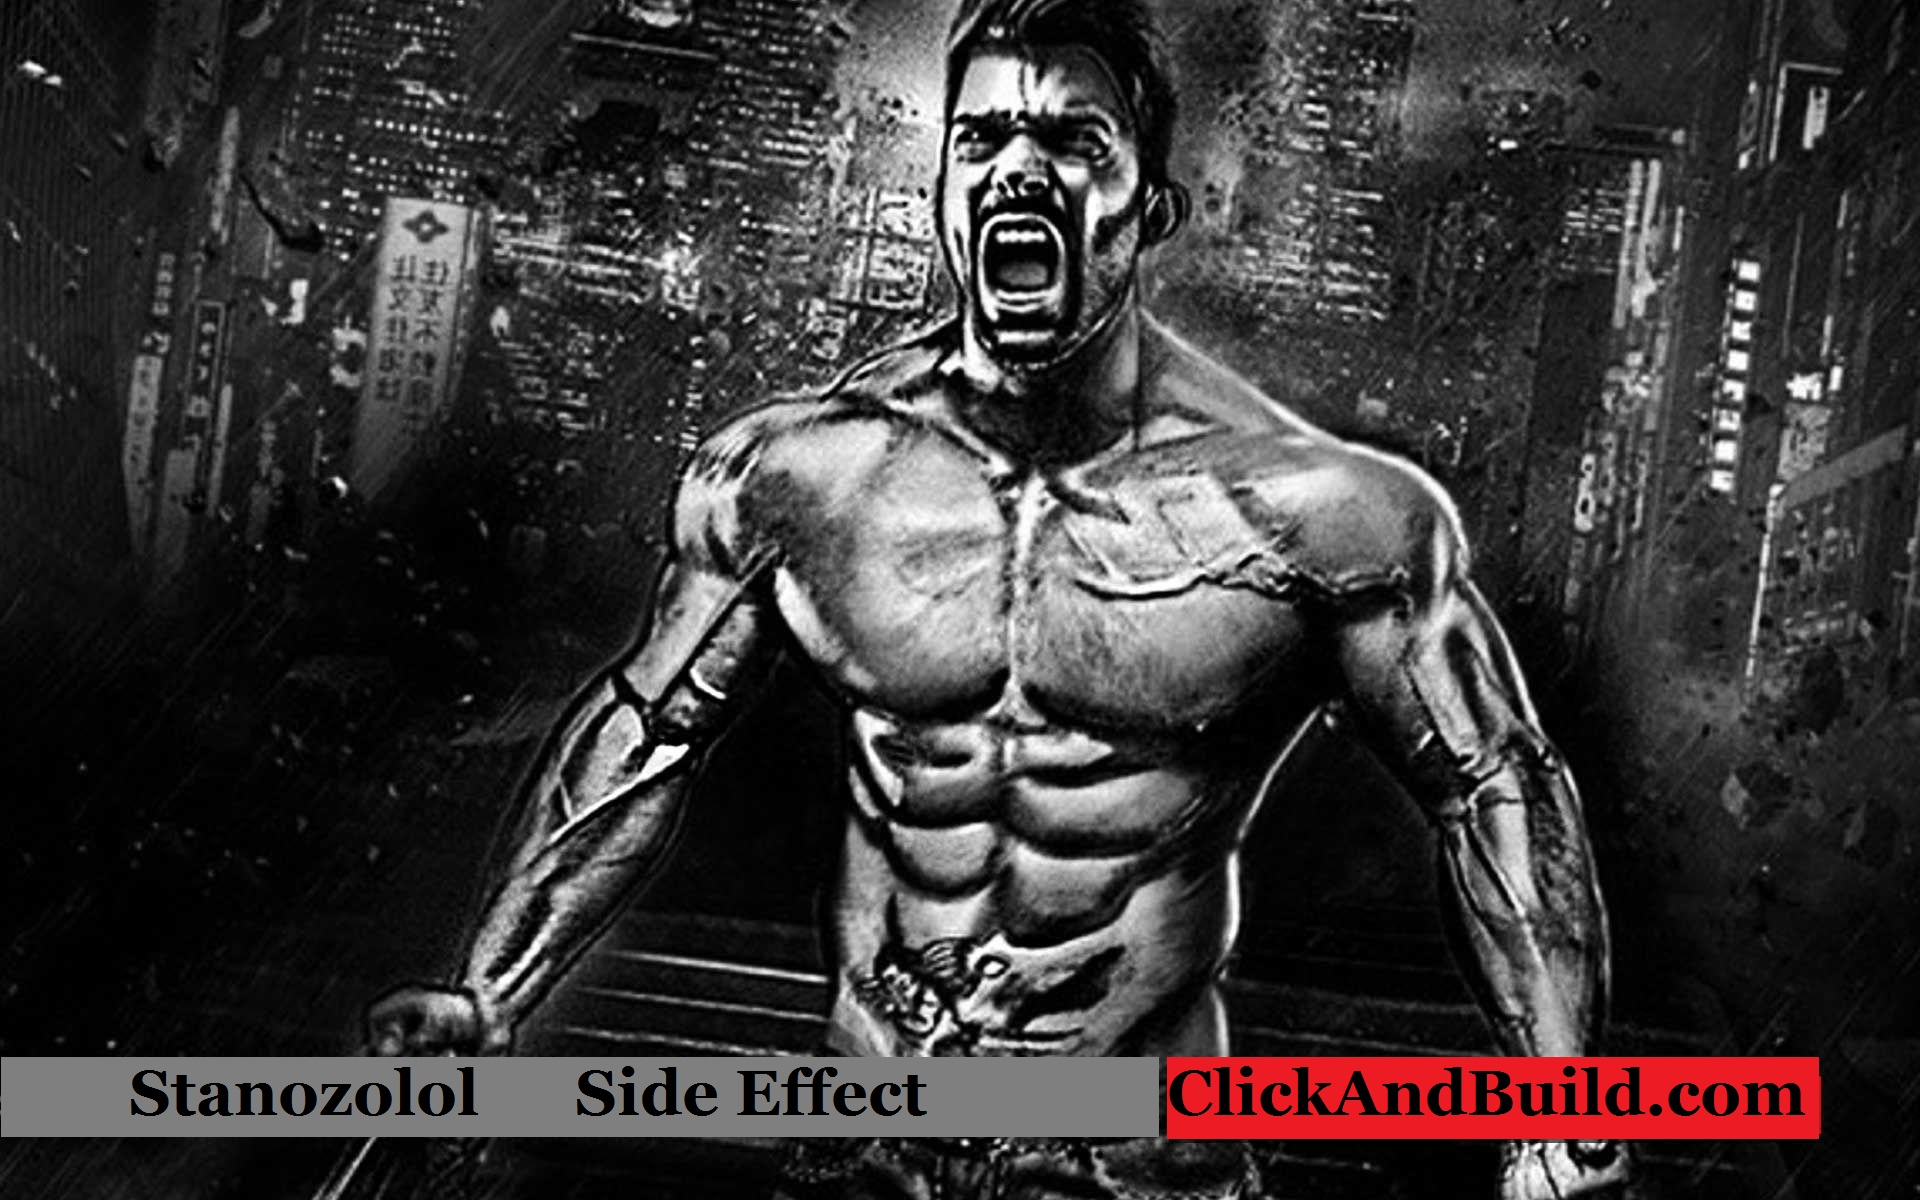 Stanozolol Side Effect